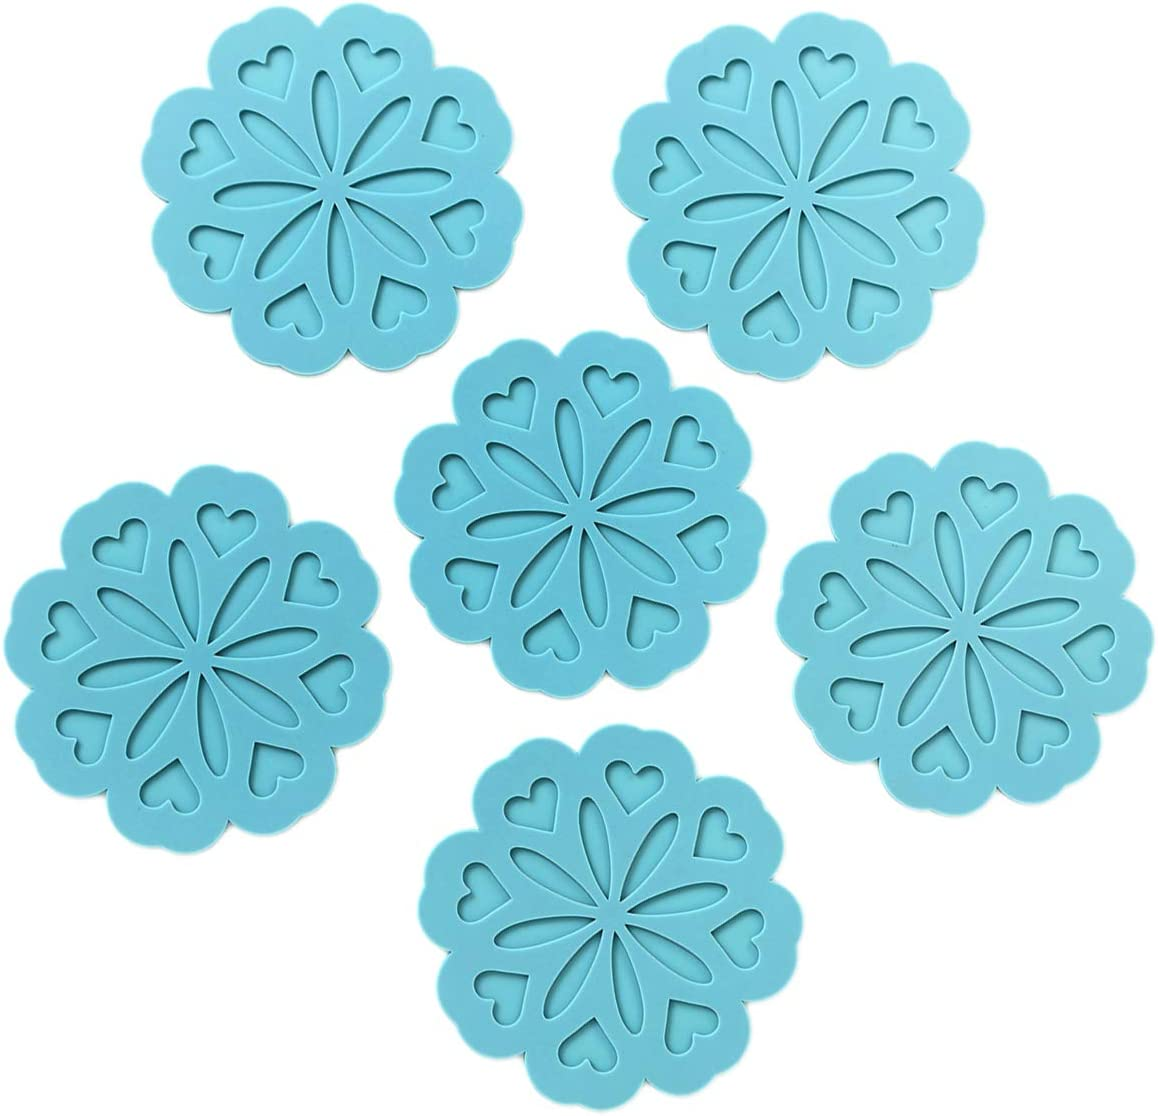 Set of 6 Silicone Trivet Mat - Hot Pot Holder Hot Pads for Table & Countertop - Trivet for Hot Dishes - Non-Slip & Heat Resistant Modern Kitchen Hot Pads for Pots & Pans, Turquoise